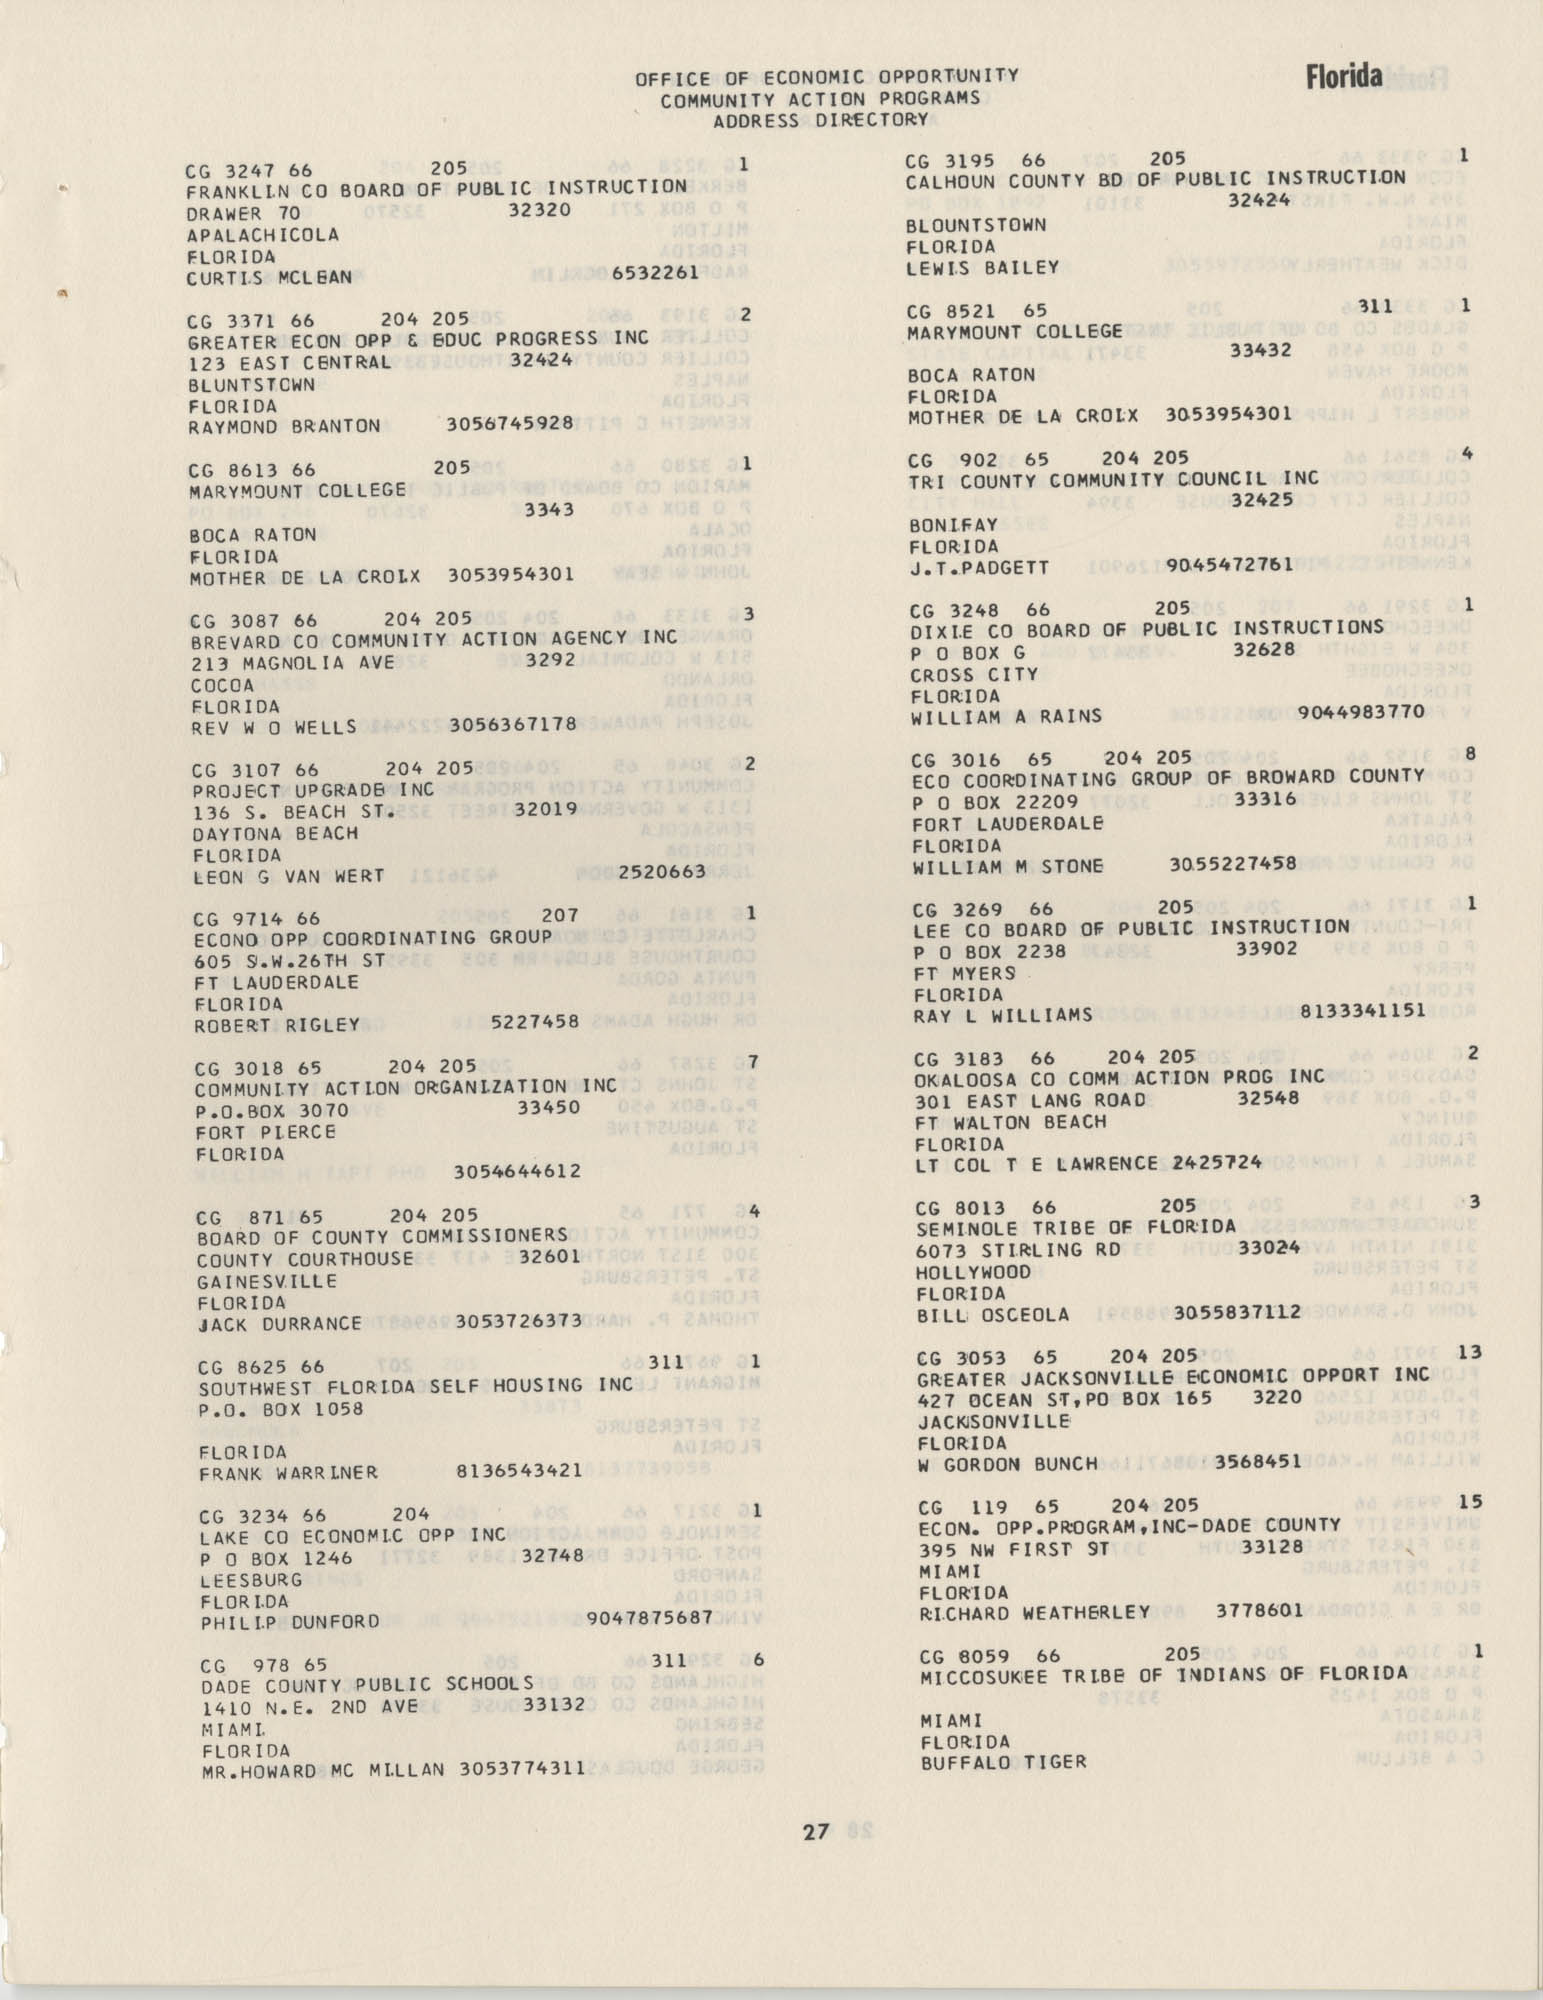 Community Action Programs Directory, June 15, 1966, Page 27